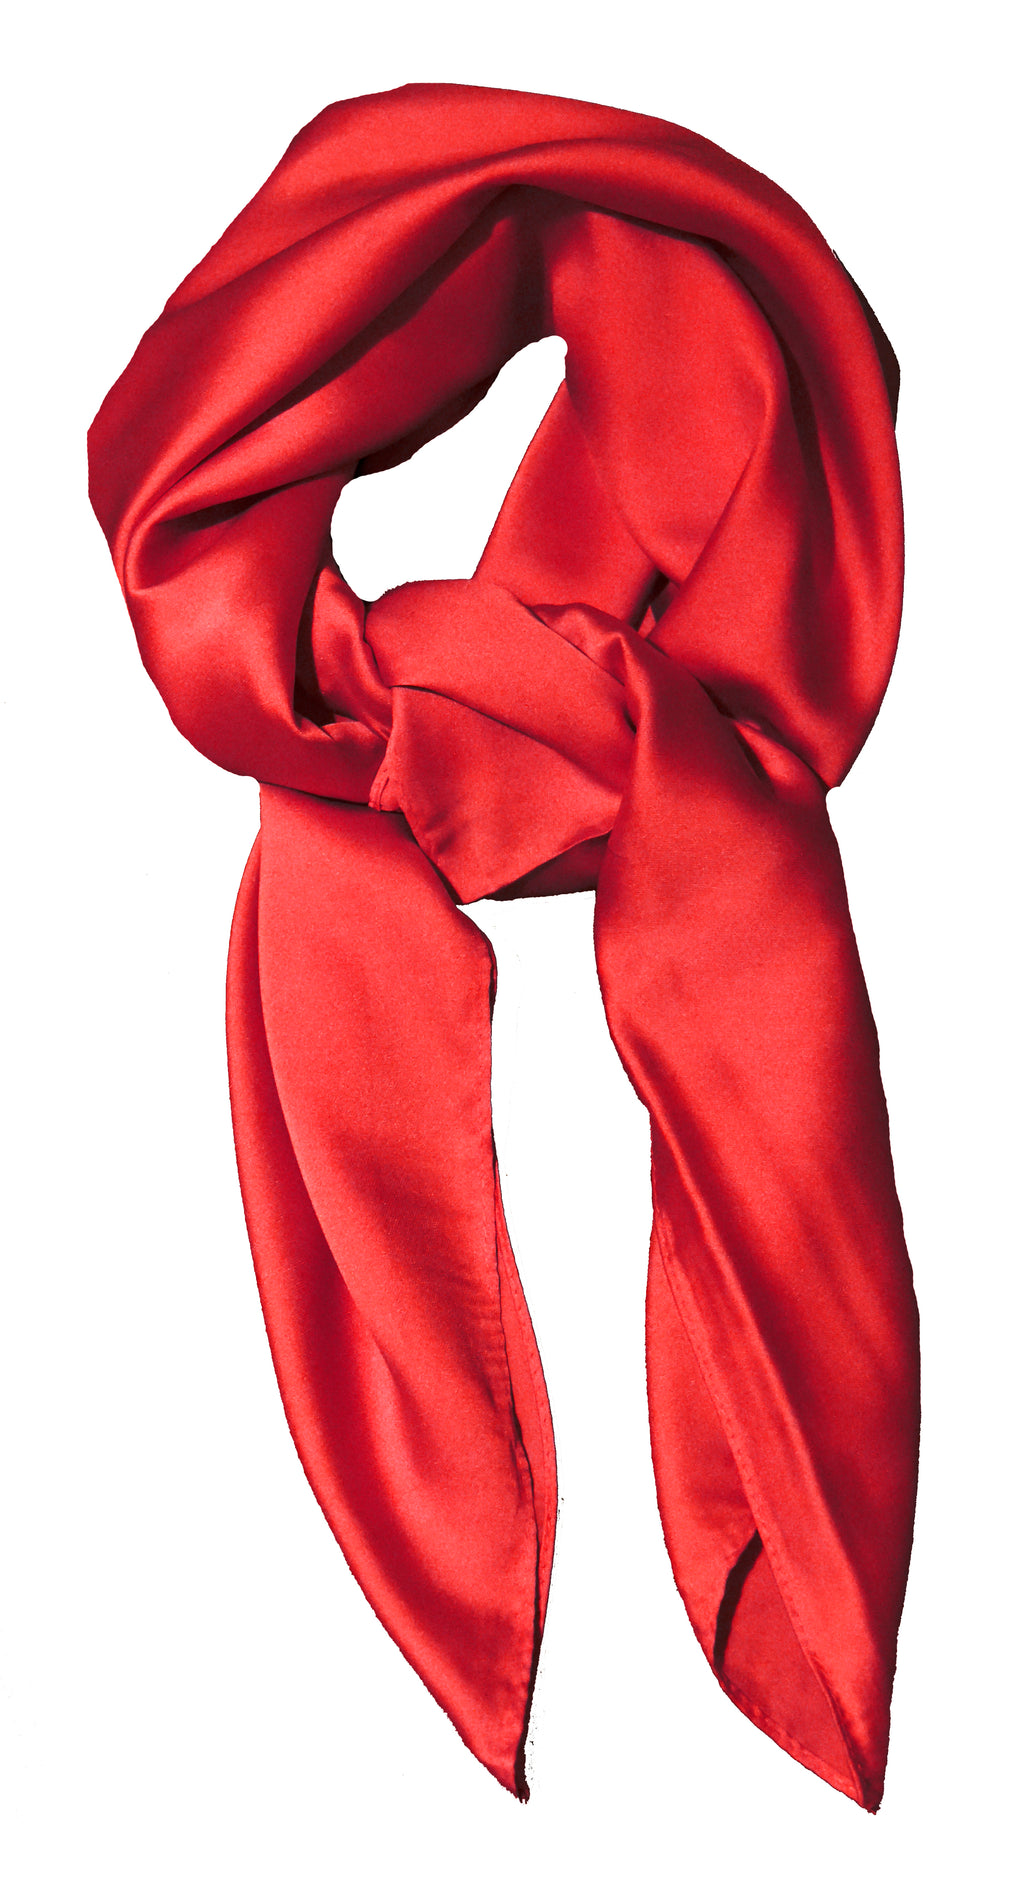 Plain Scarlet Red Scarf Thin and Silky for Summer and Spring